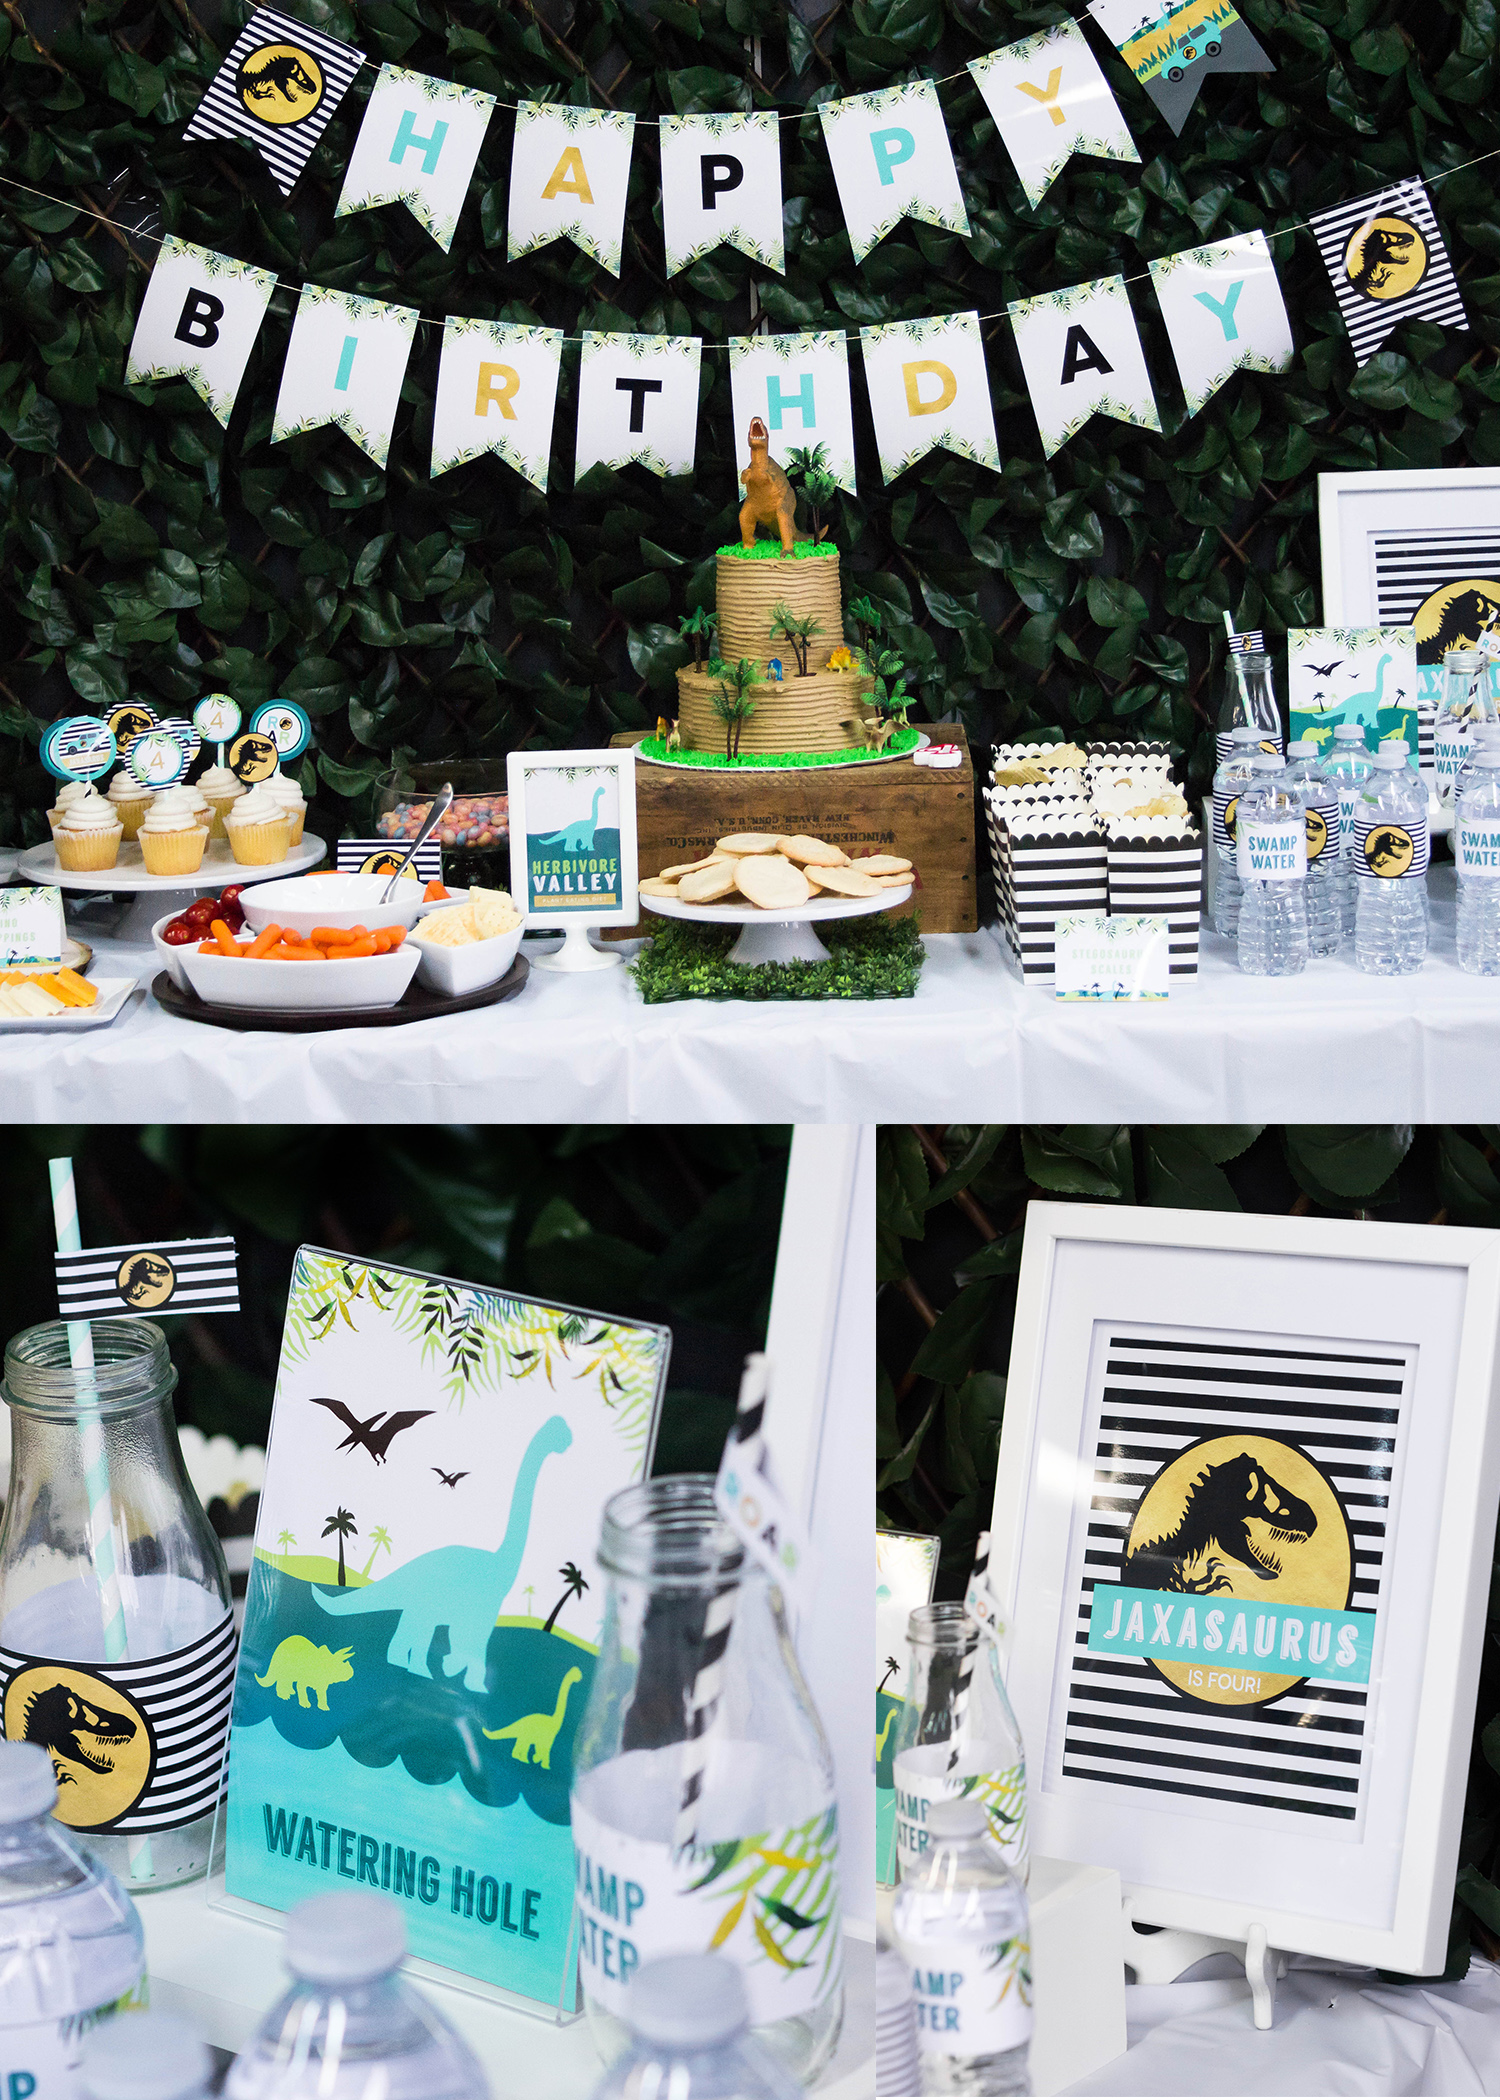 Jurassic Park Inspired Birthday Party By MKKM Designs